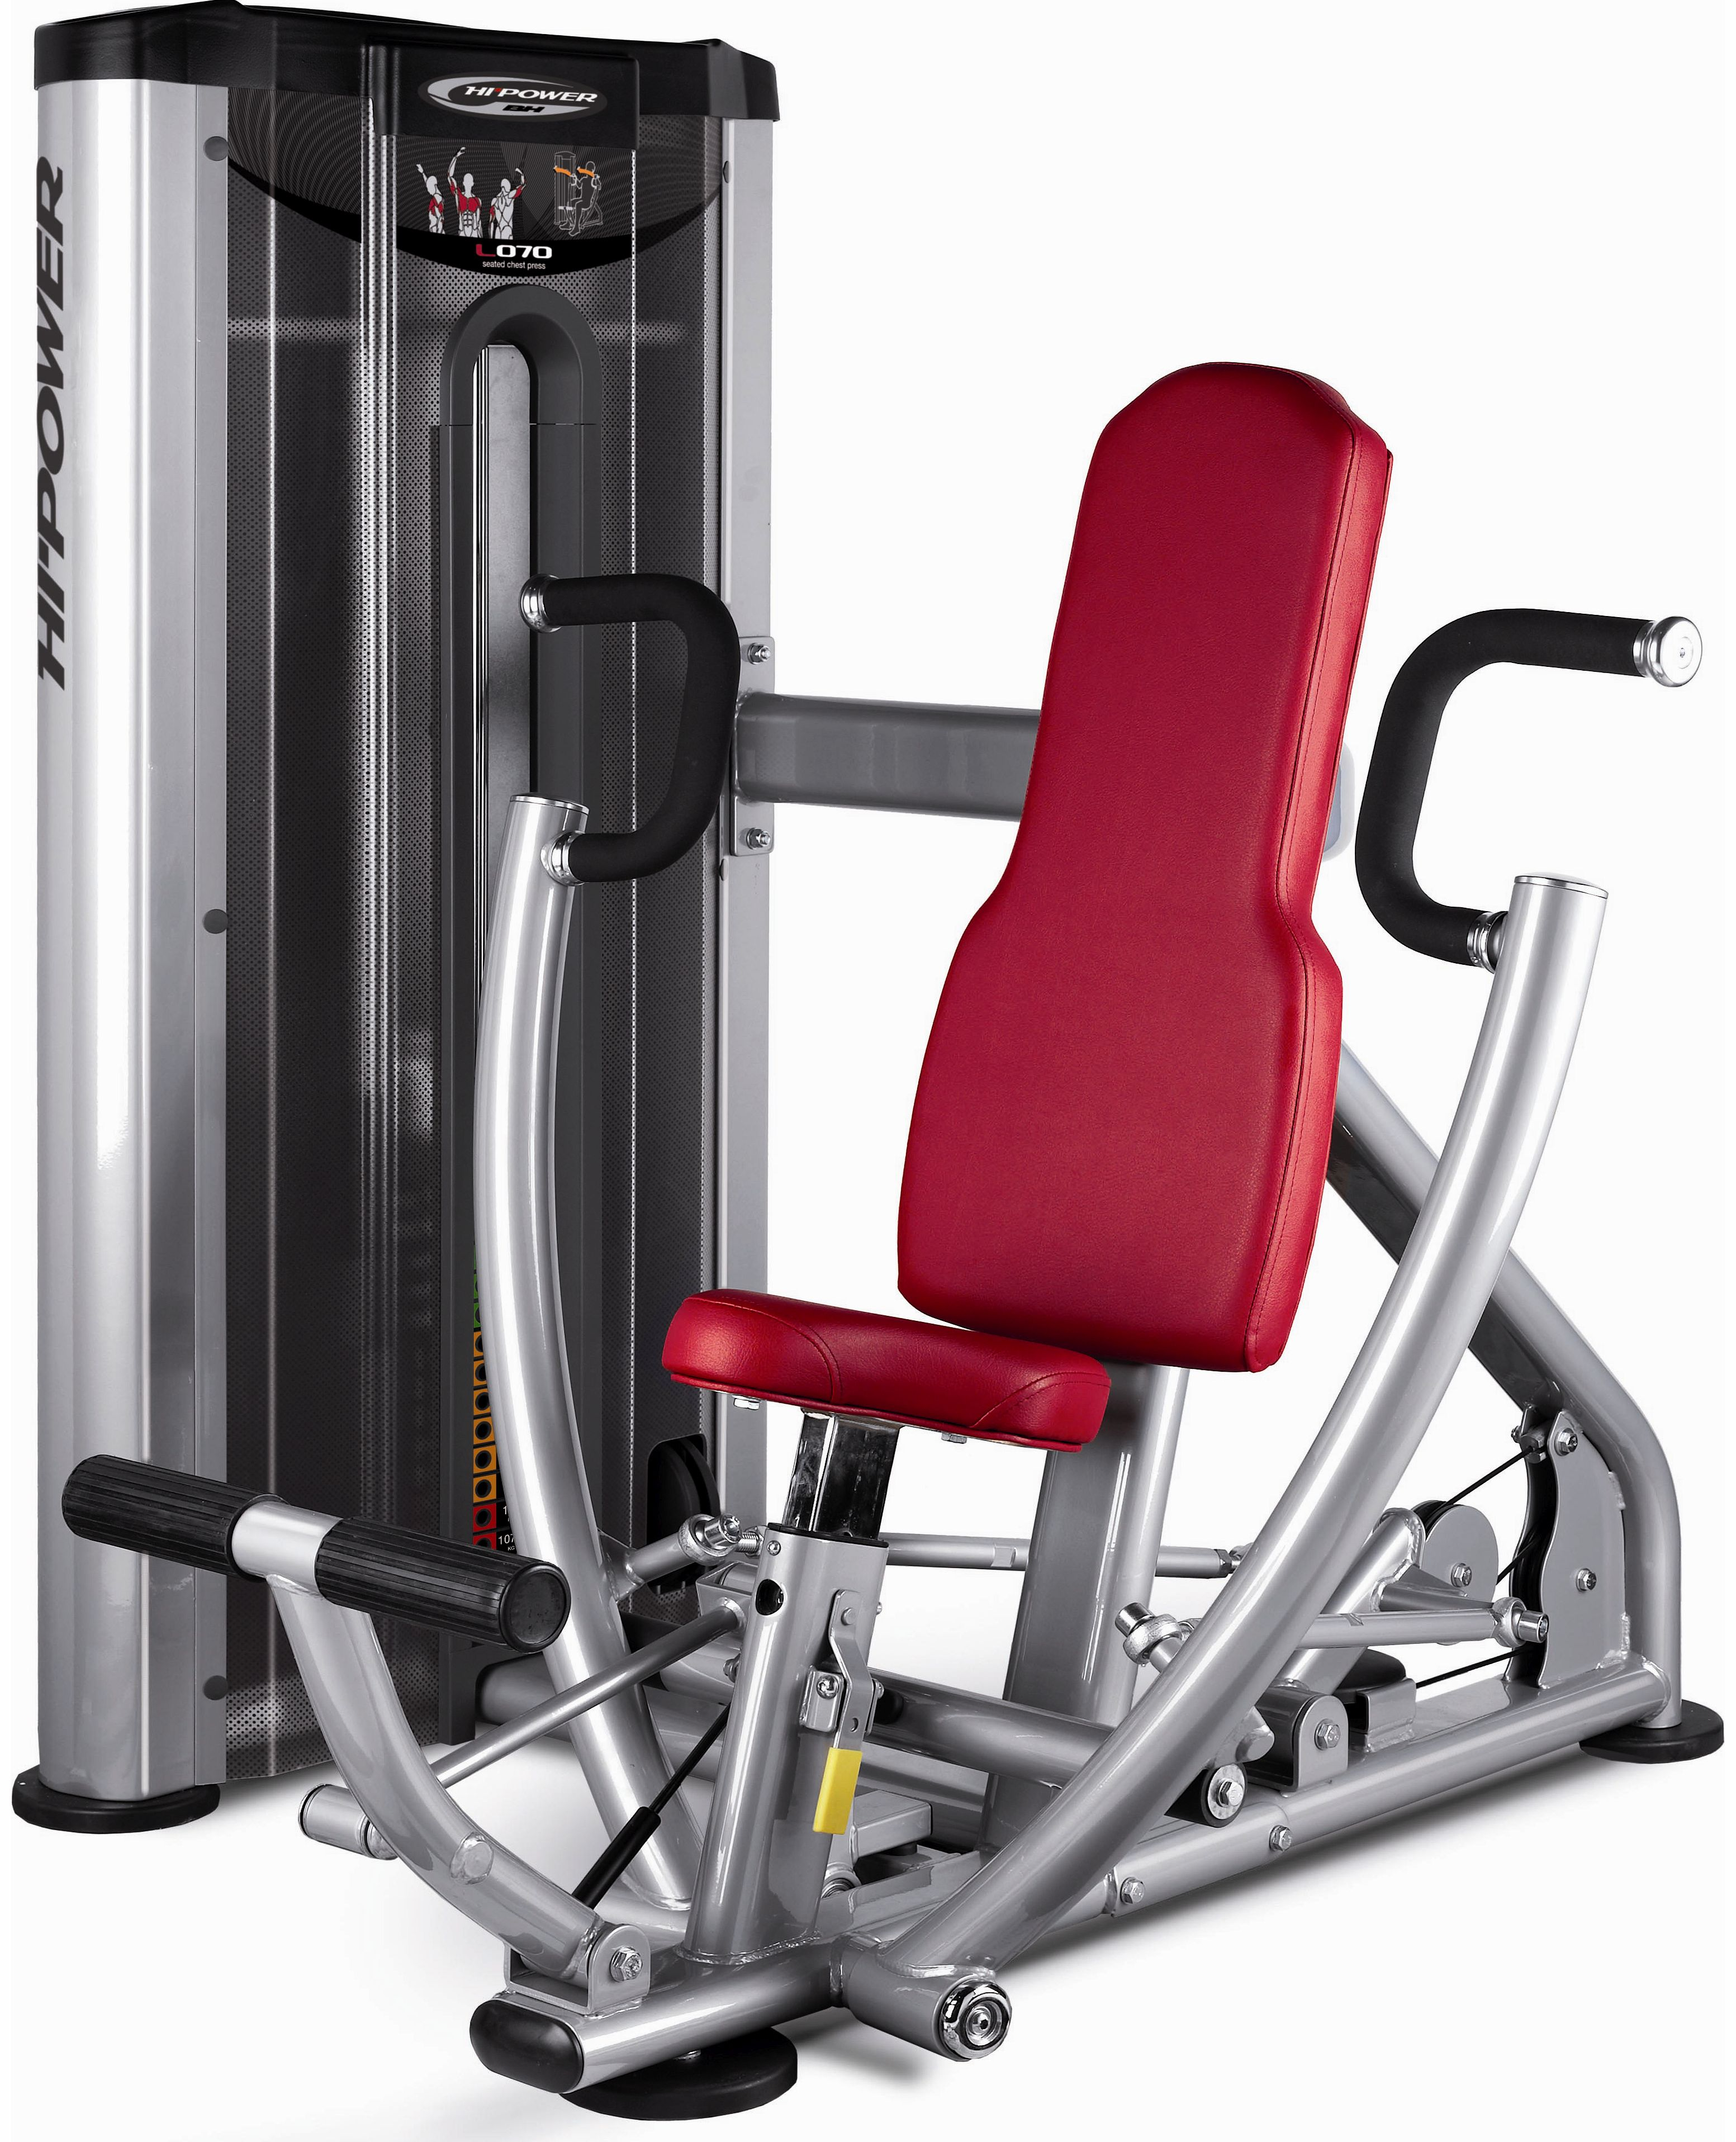 BH L070 Seated Chest Press